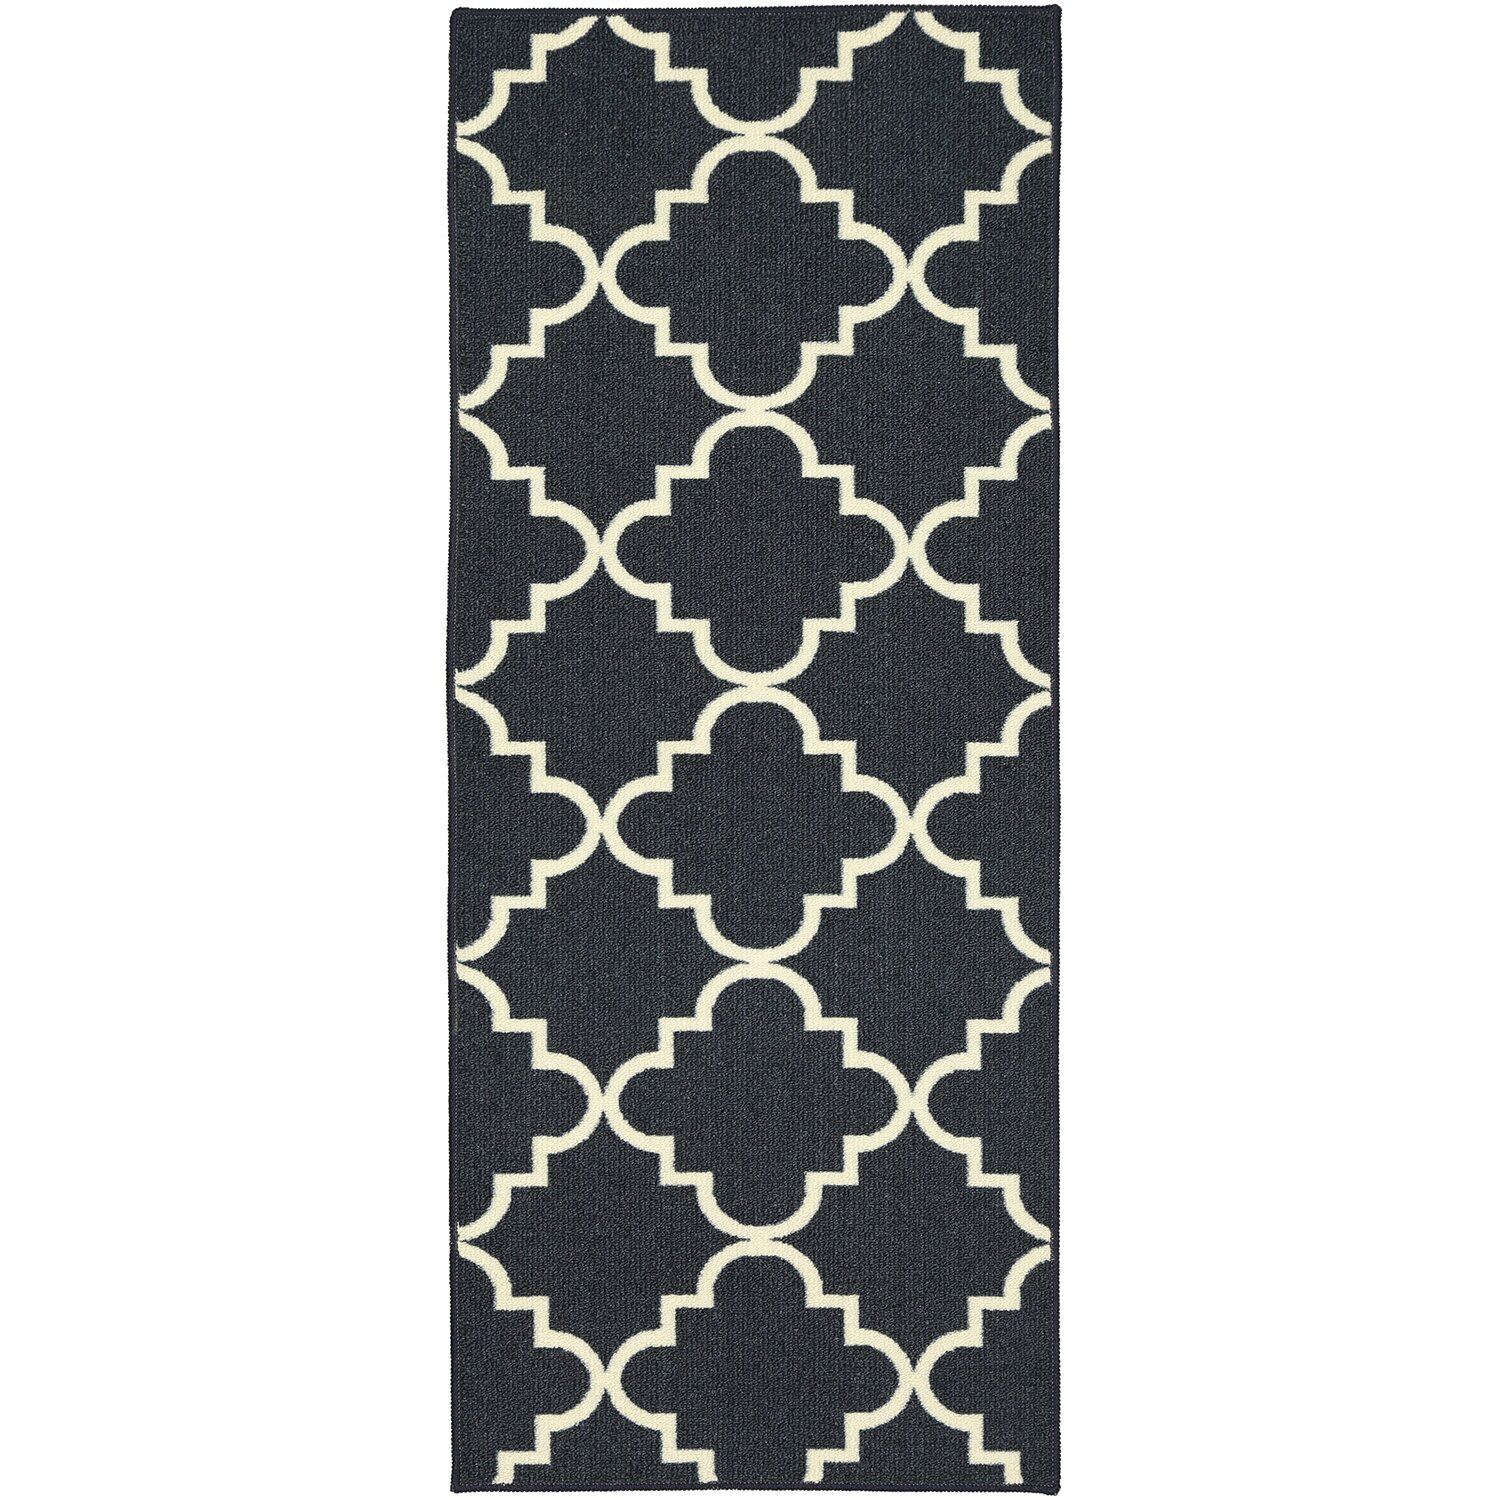 Charlton Home Hanley Navy Blue u0026 White Area Rug u0026 Reviews : Wayfair.ca